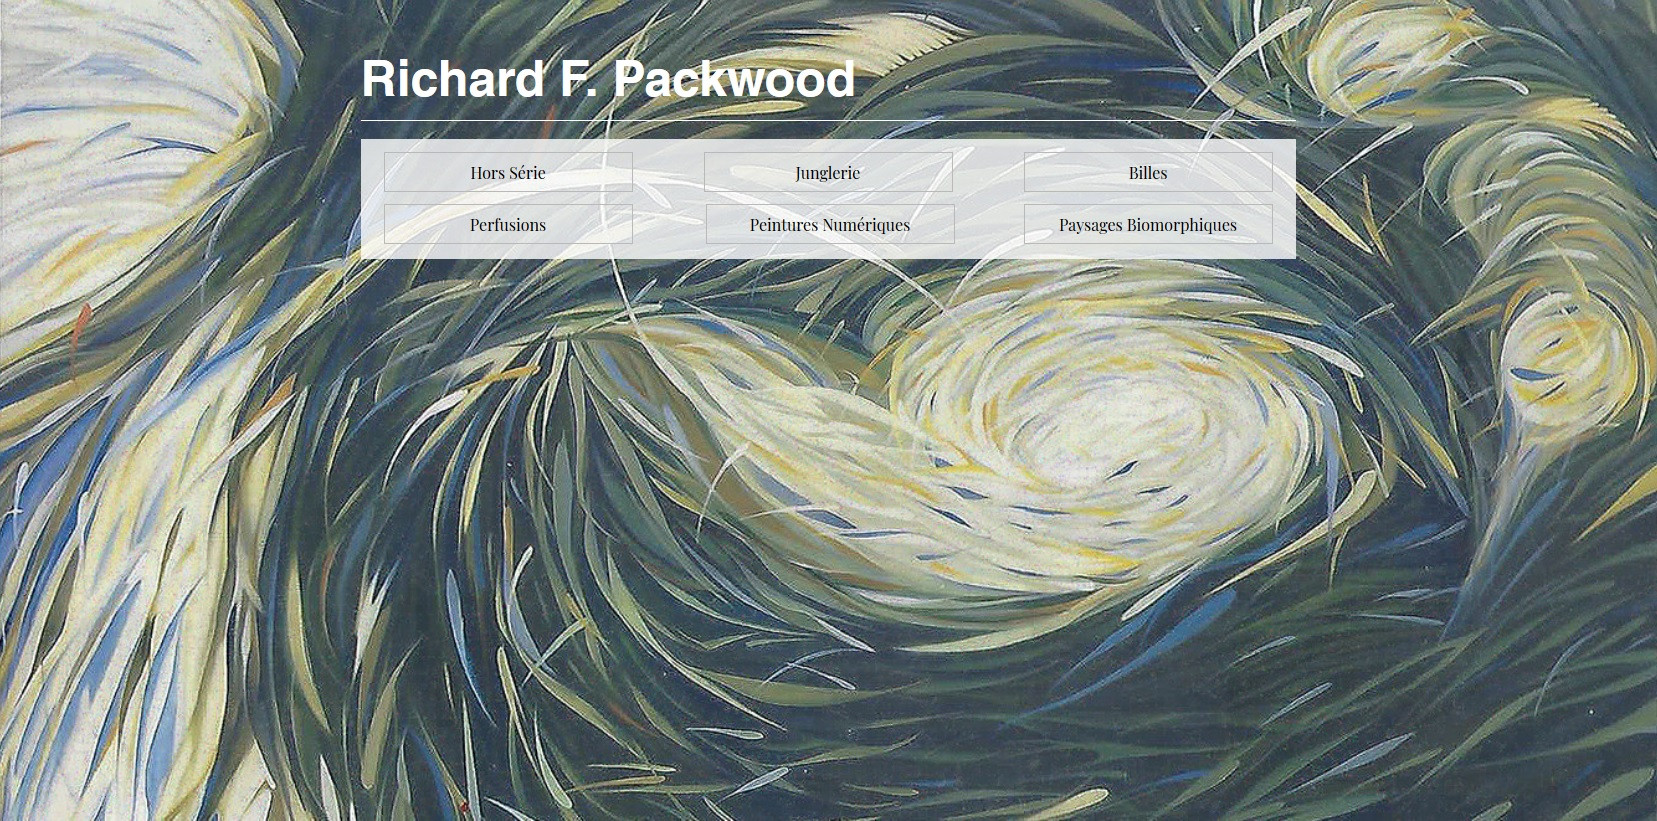 Richard F Packwood